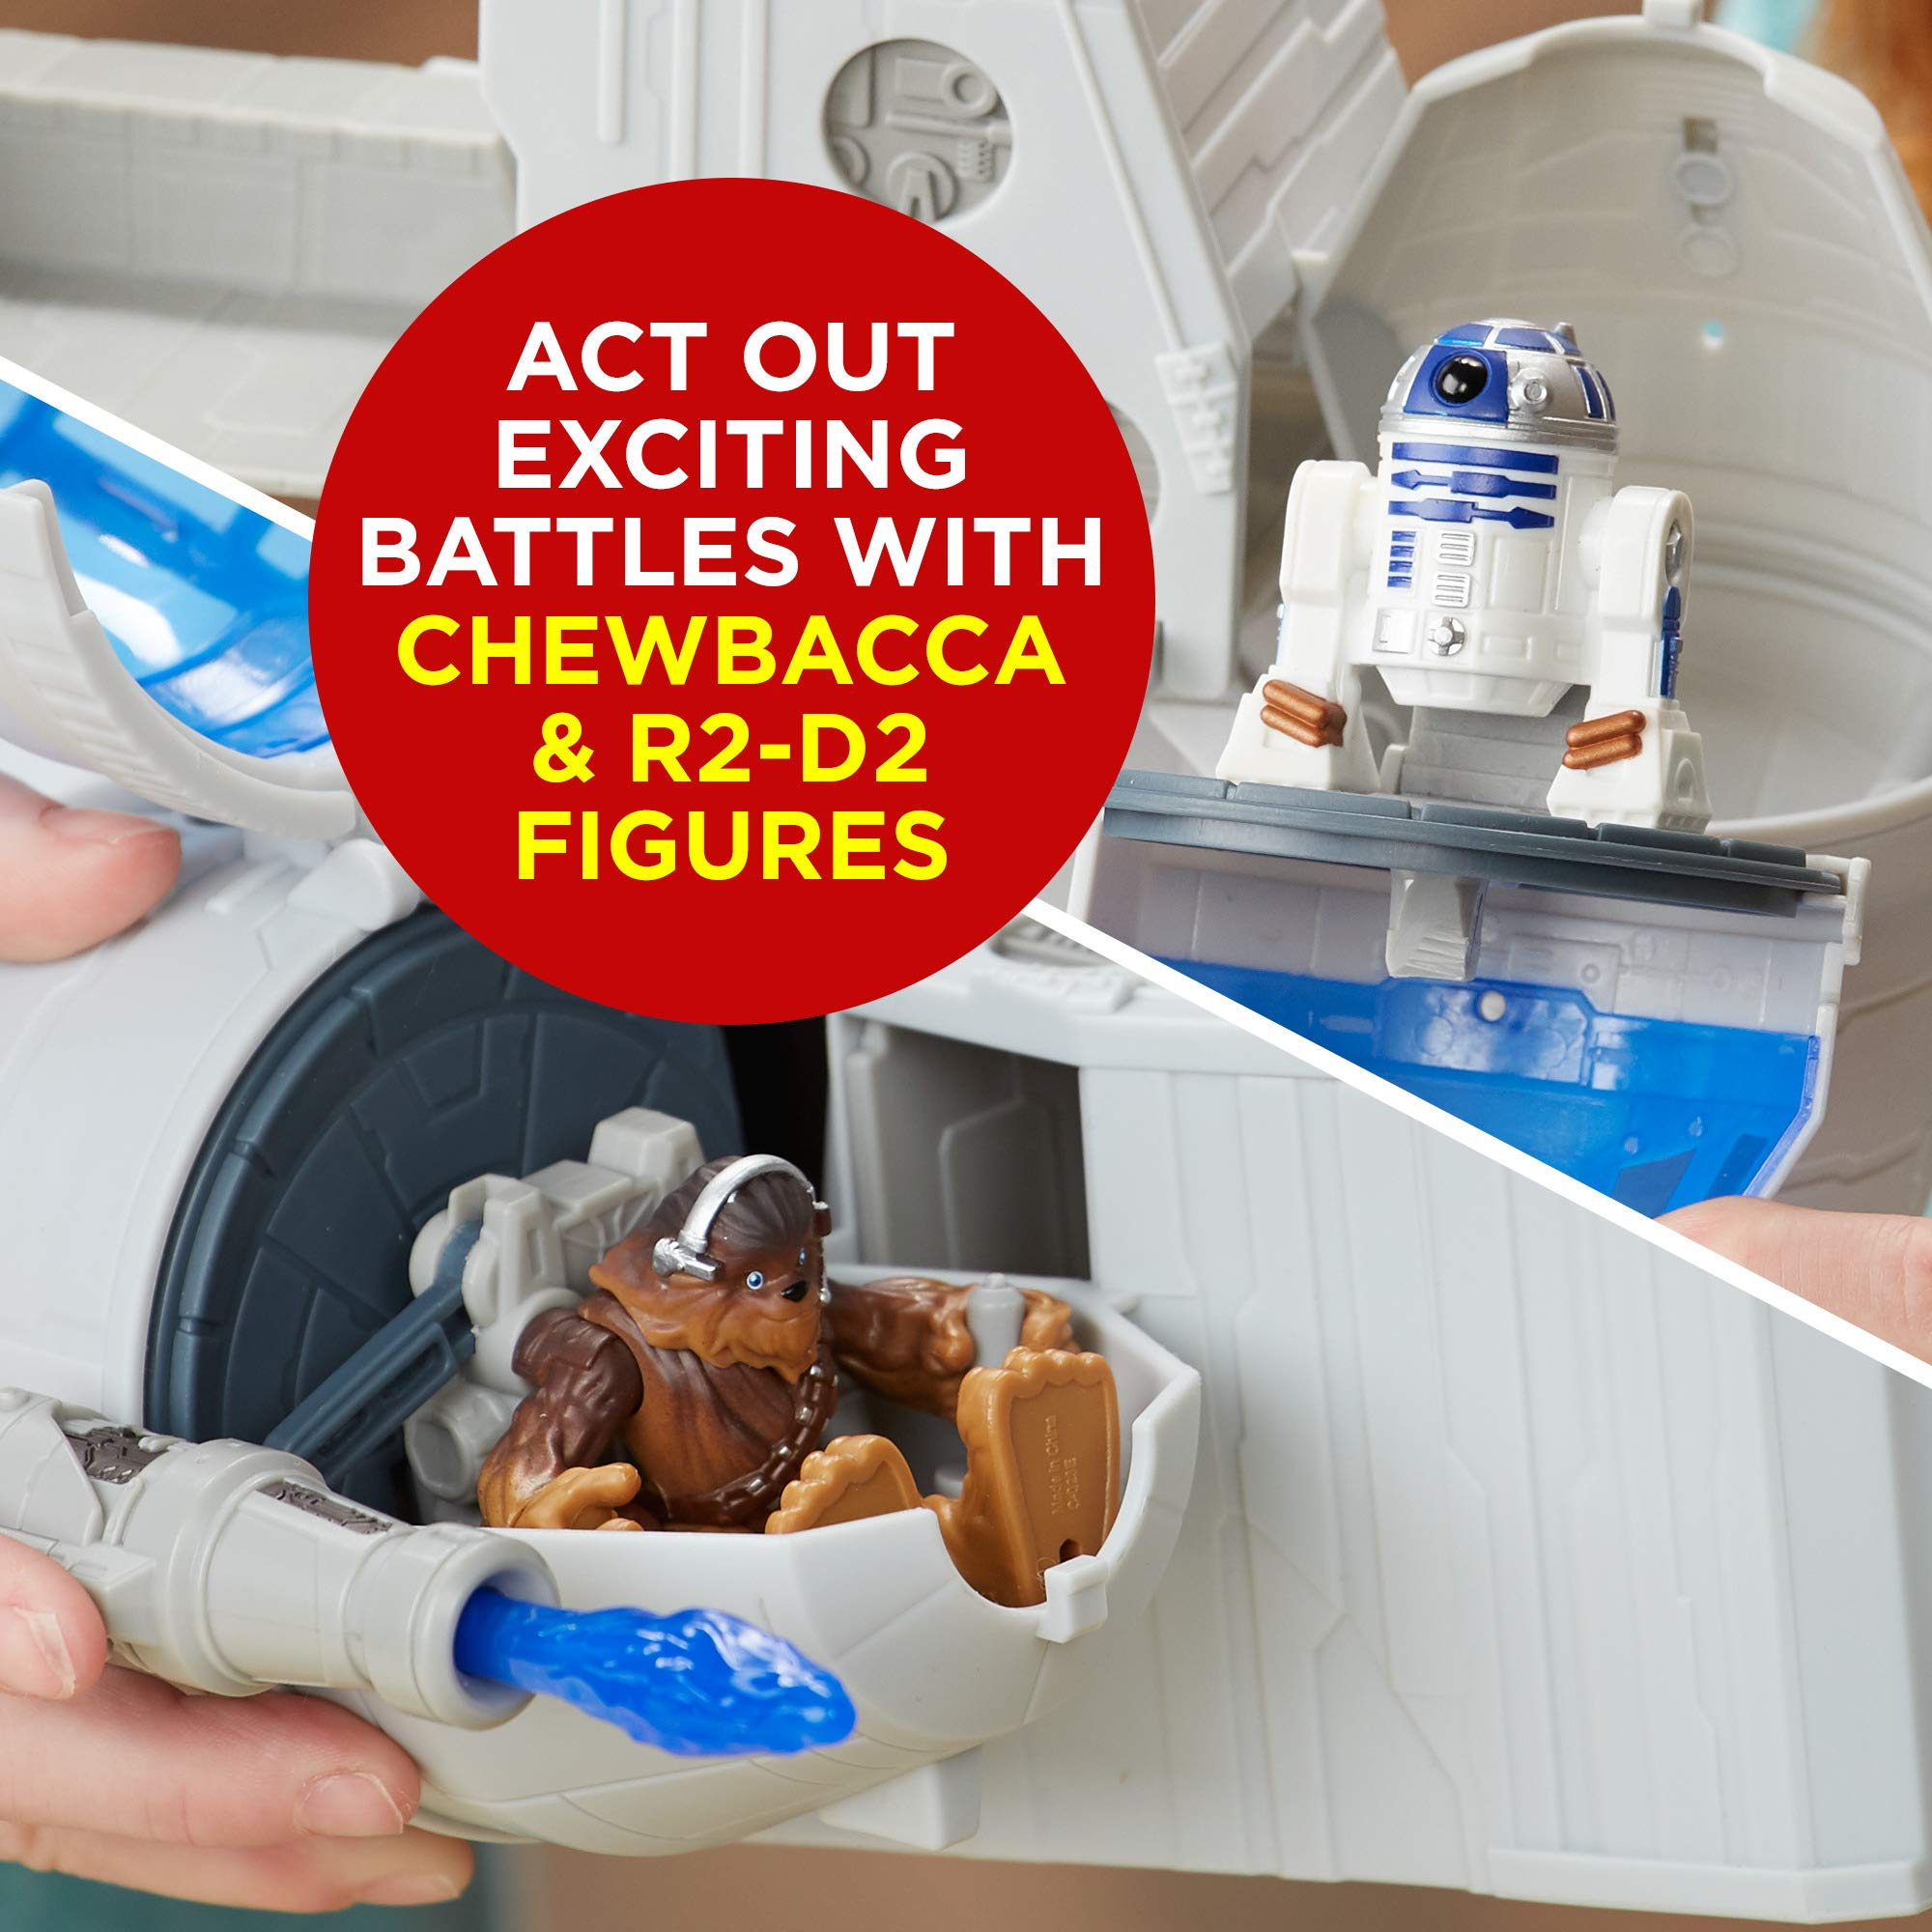 Star Wars Galactic Heroes 2-In-1 Millennium Falcon Vehicle Playset, Chewbacca, R2-D2 2.5-Inch Action Figures, Lights and Sounds, Toys for Kids Ages 3 and Up by Playskool (Image #3)